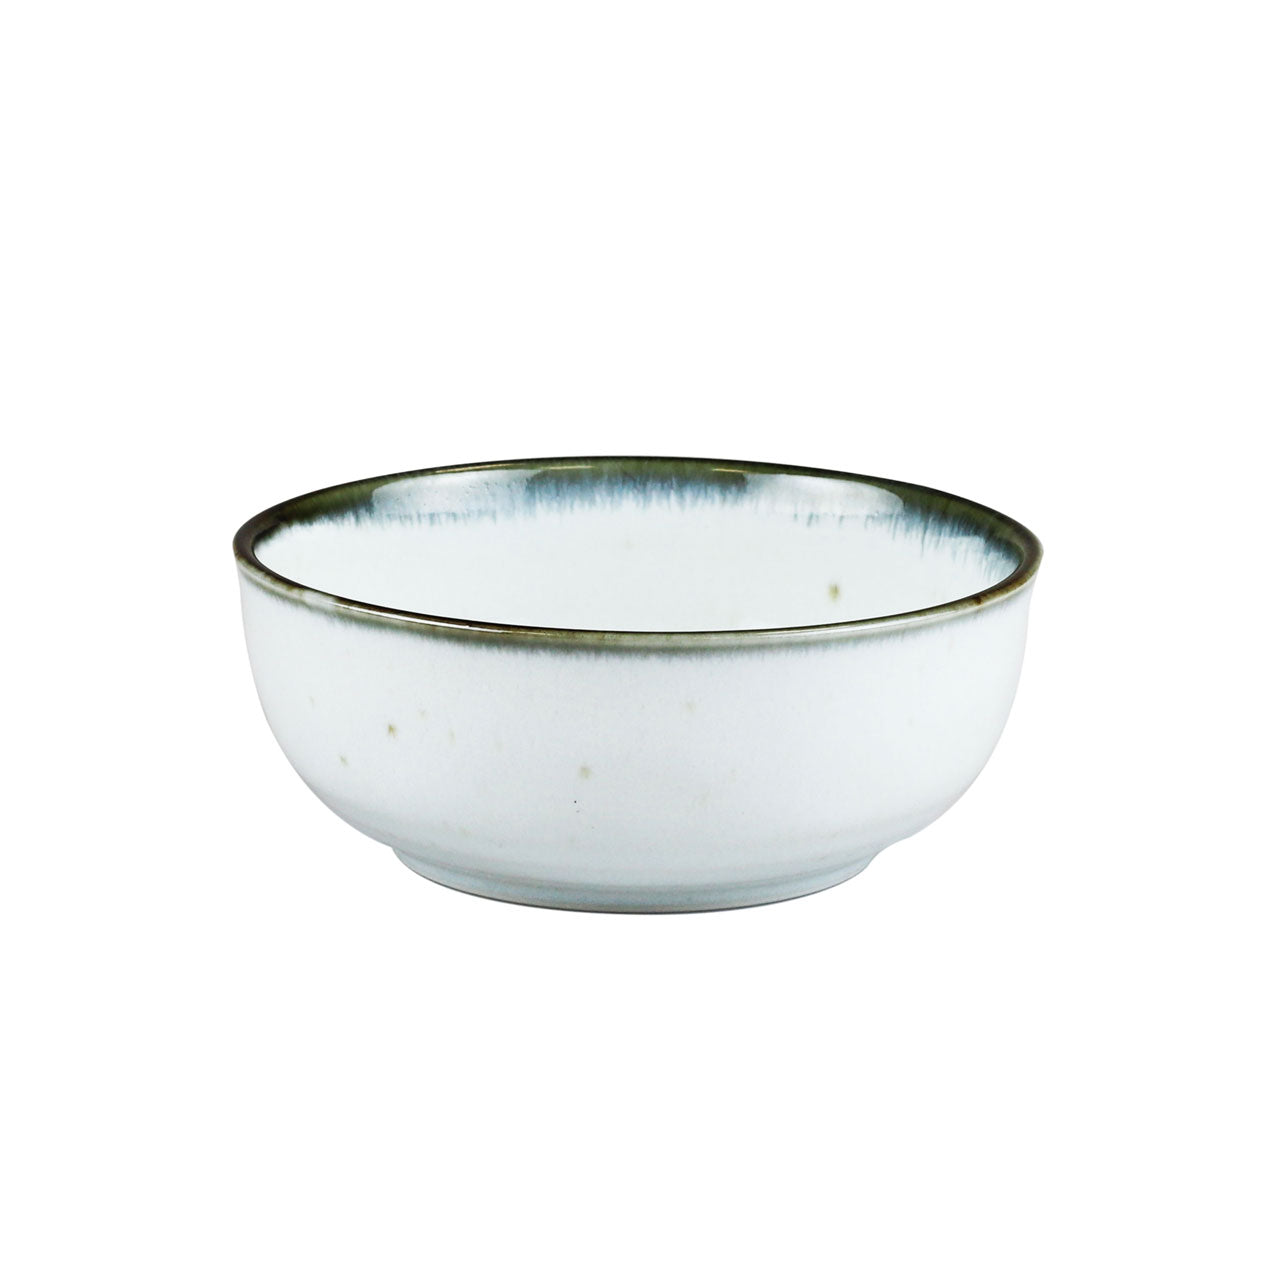 "Shirokinyo Ivory Speckled Salad Bowl with Indigo Rim 27.5 fl oz / 6.45"" dia"